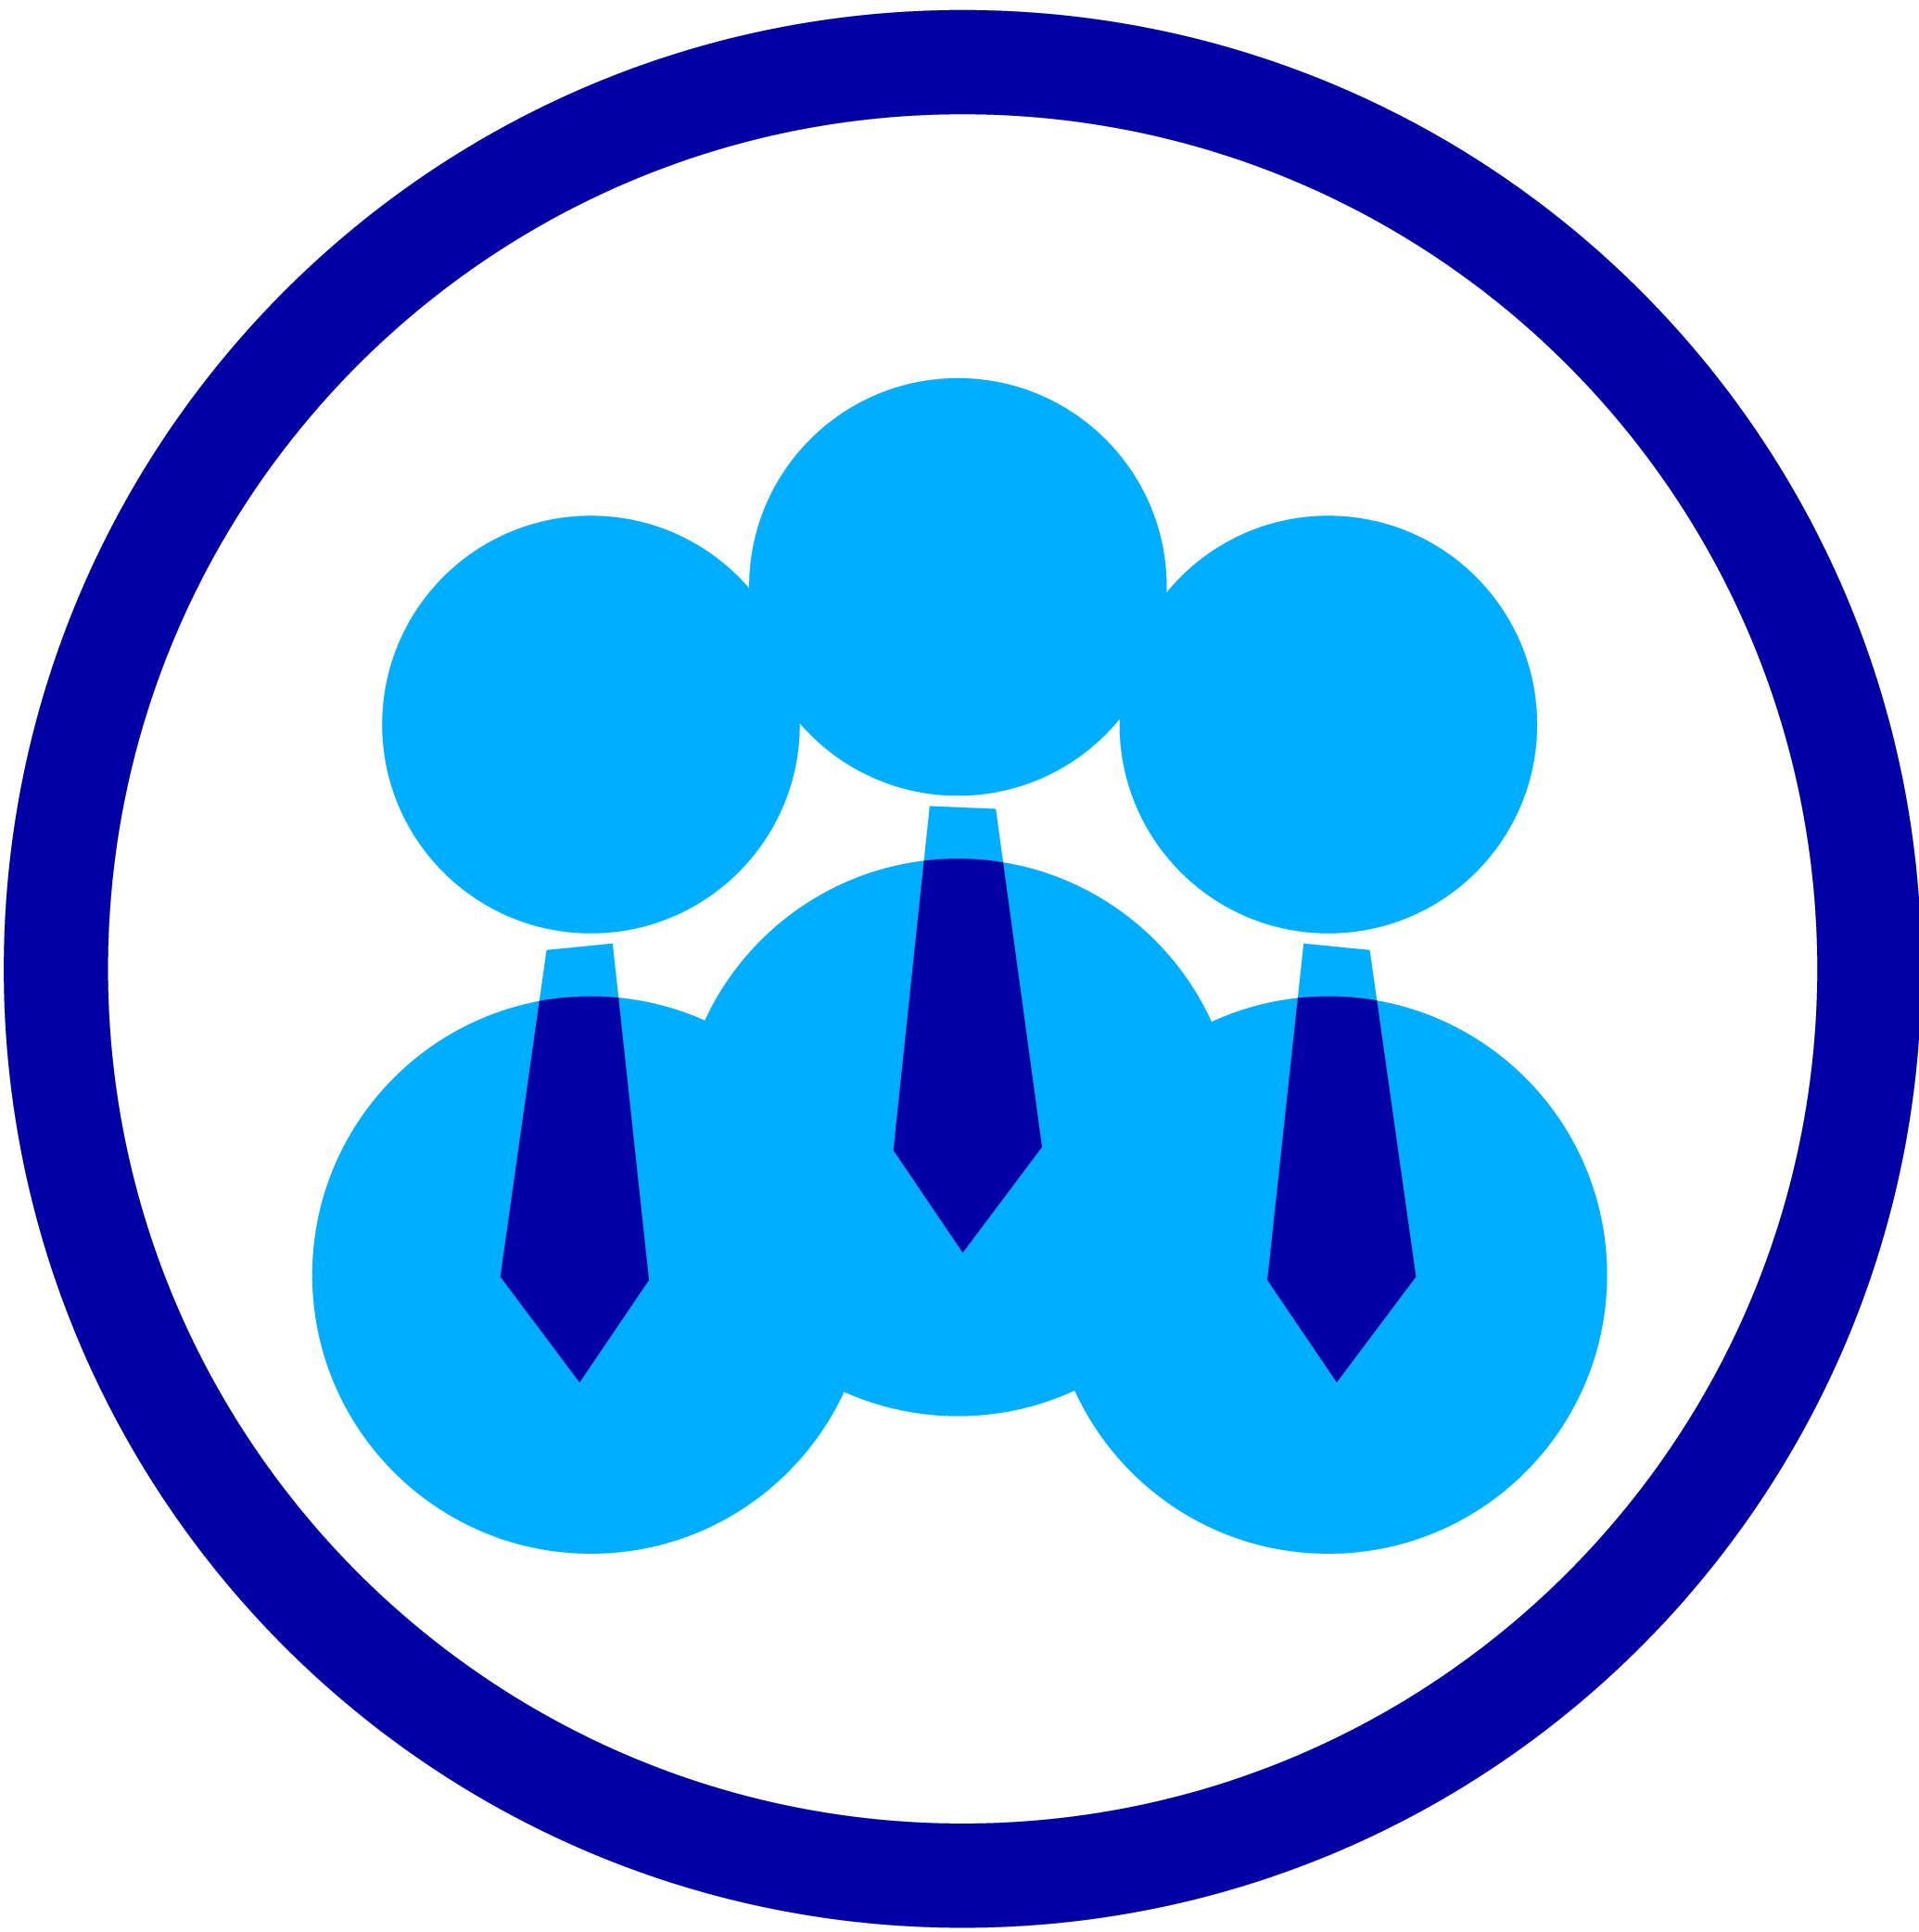 https://jp.fi-group.com/wp-content/uploads/sites/18/2021/02/blue-icons-set_1-59.png